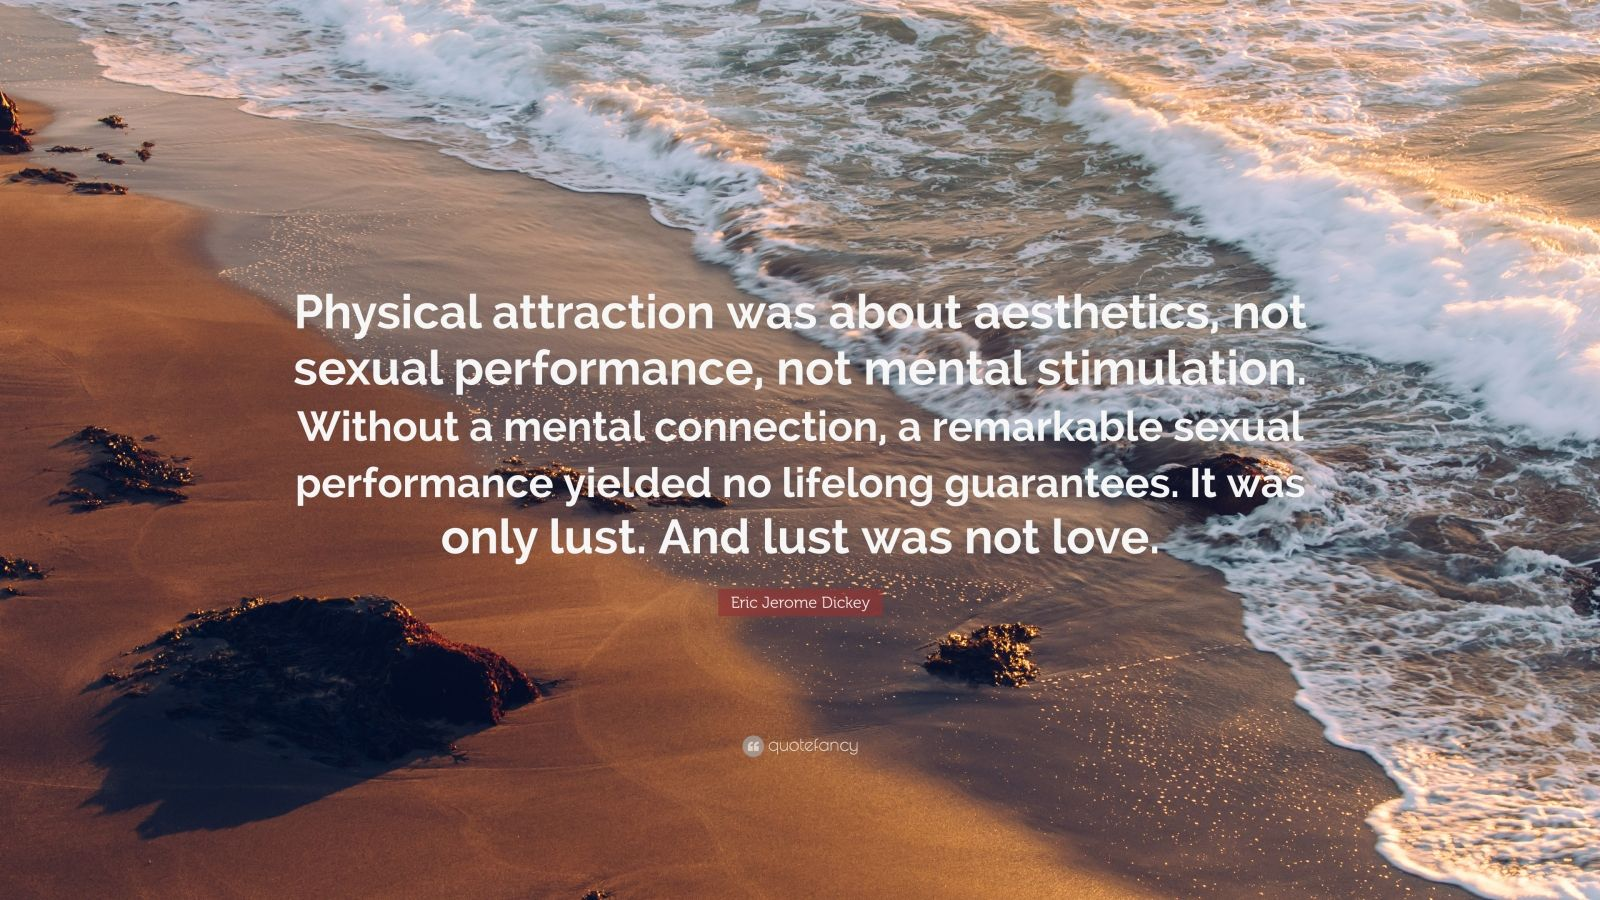 Eric Jerome Dickey Quote Physical Attraction Was About Aesthetics, Not Sexual -6736